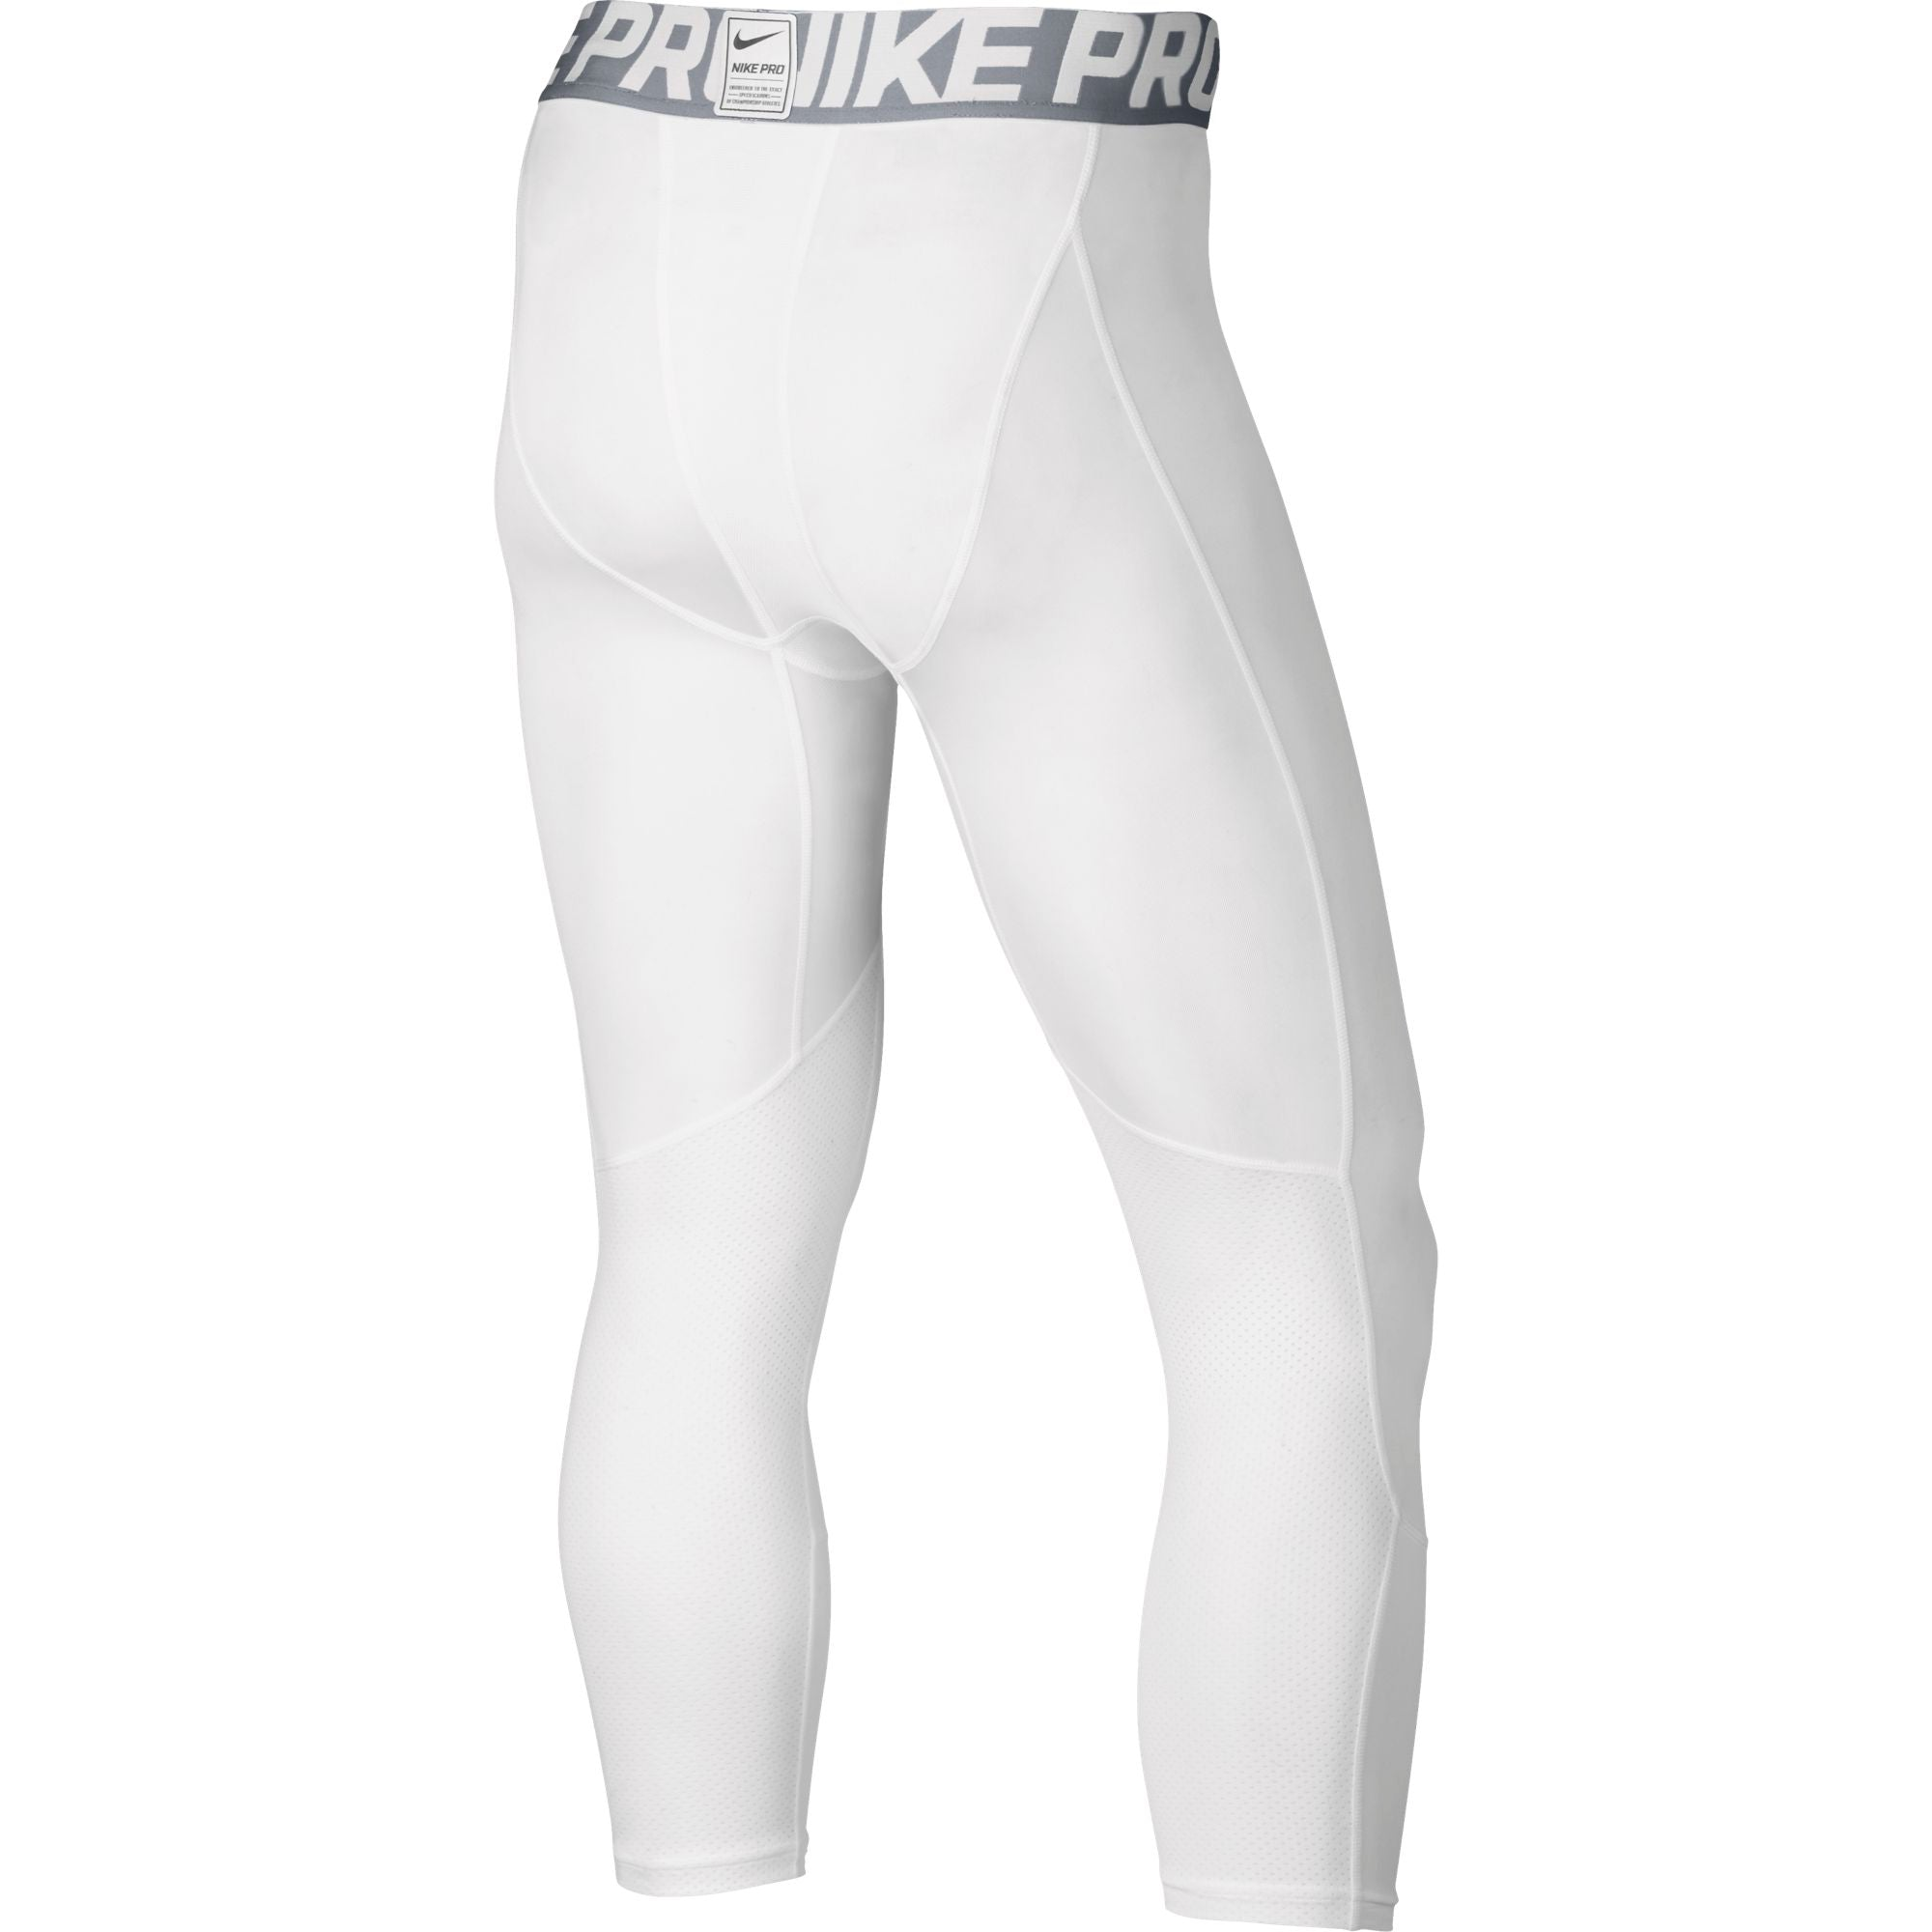 Nike Basketball Pro Hypercool Compression Three-quarter Length Tights - White/Wolf Grey